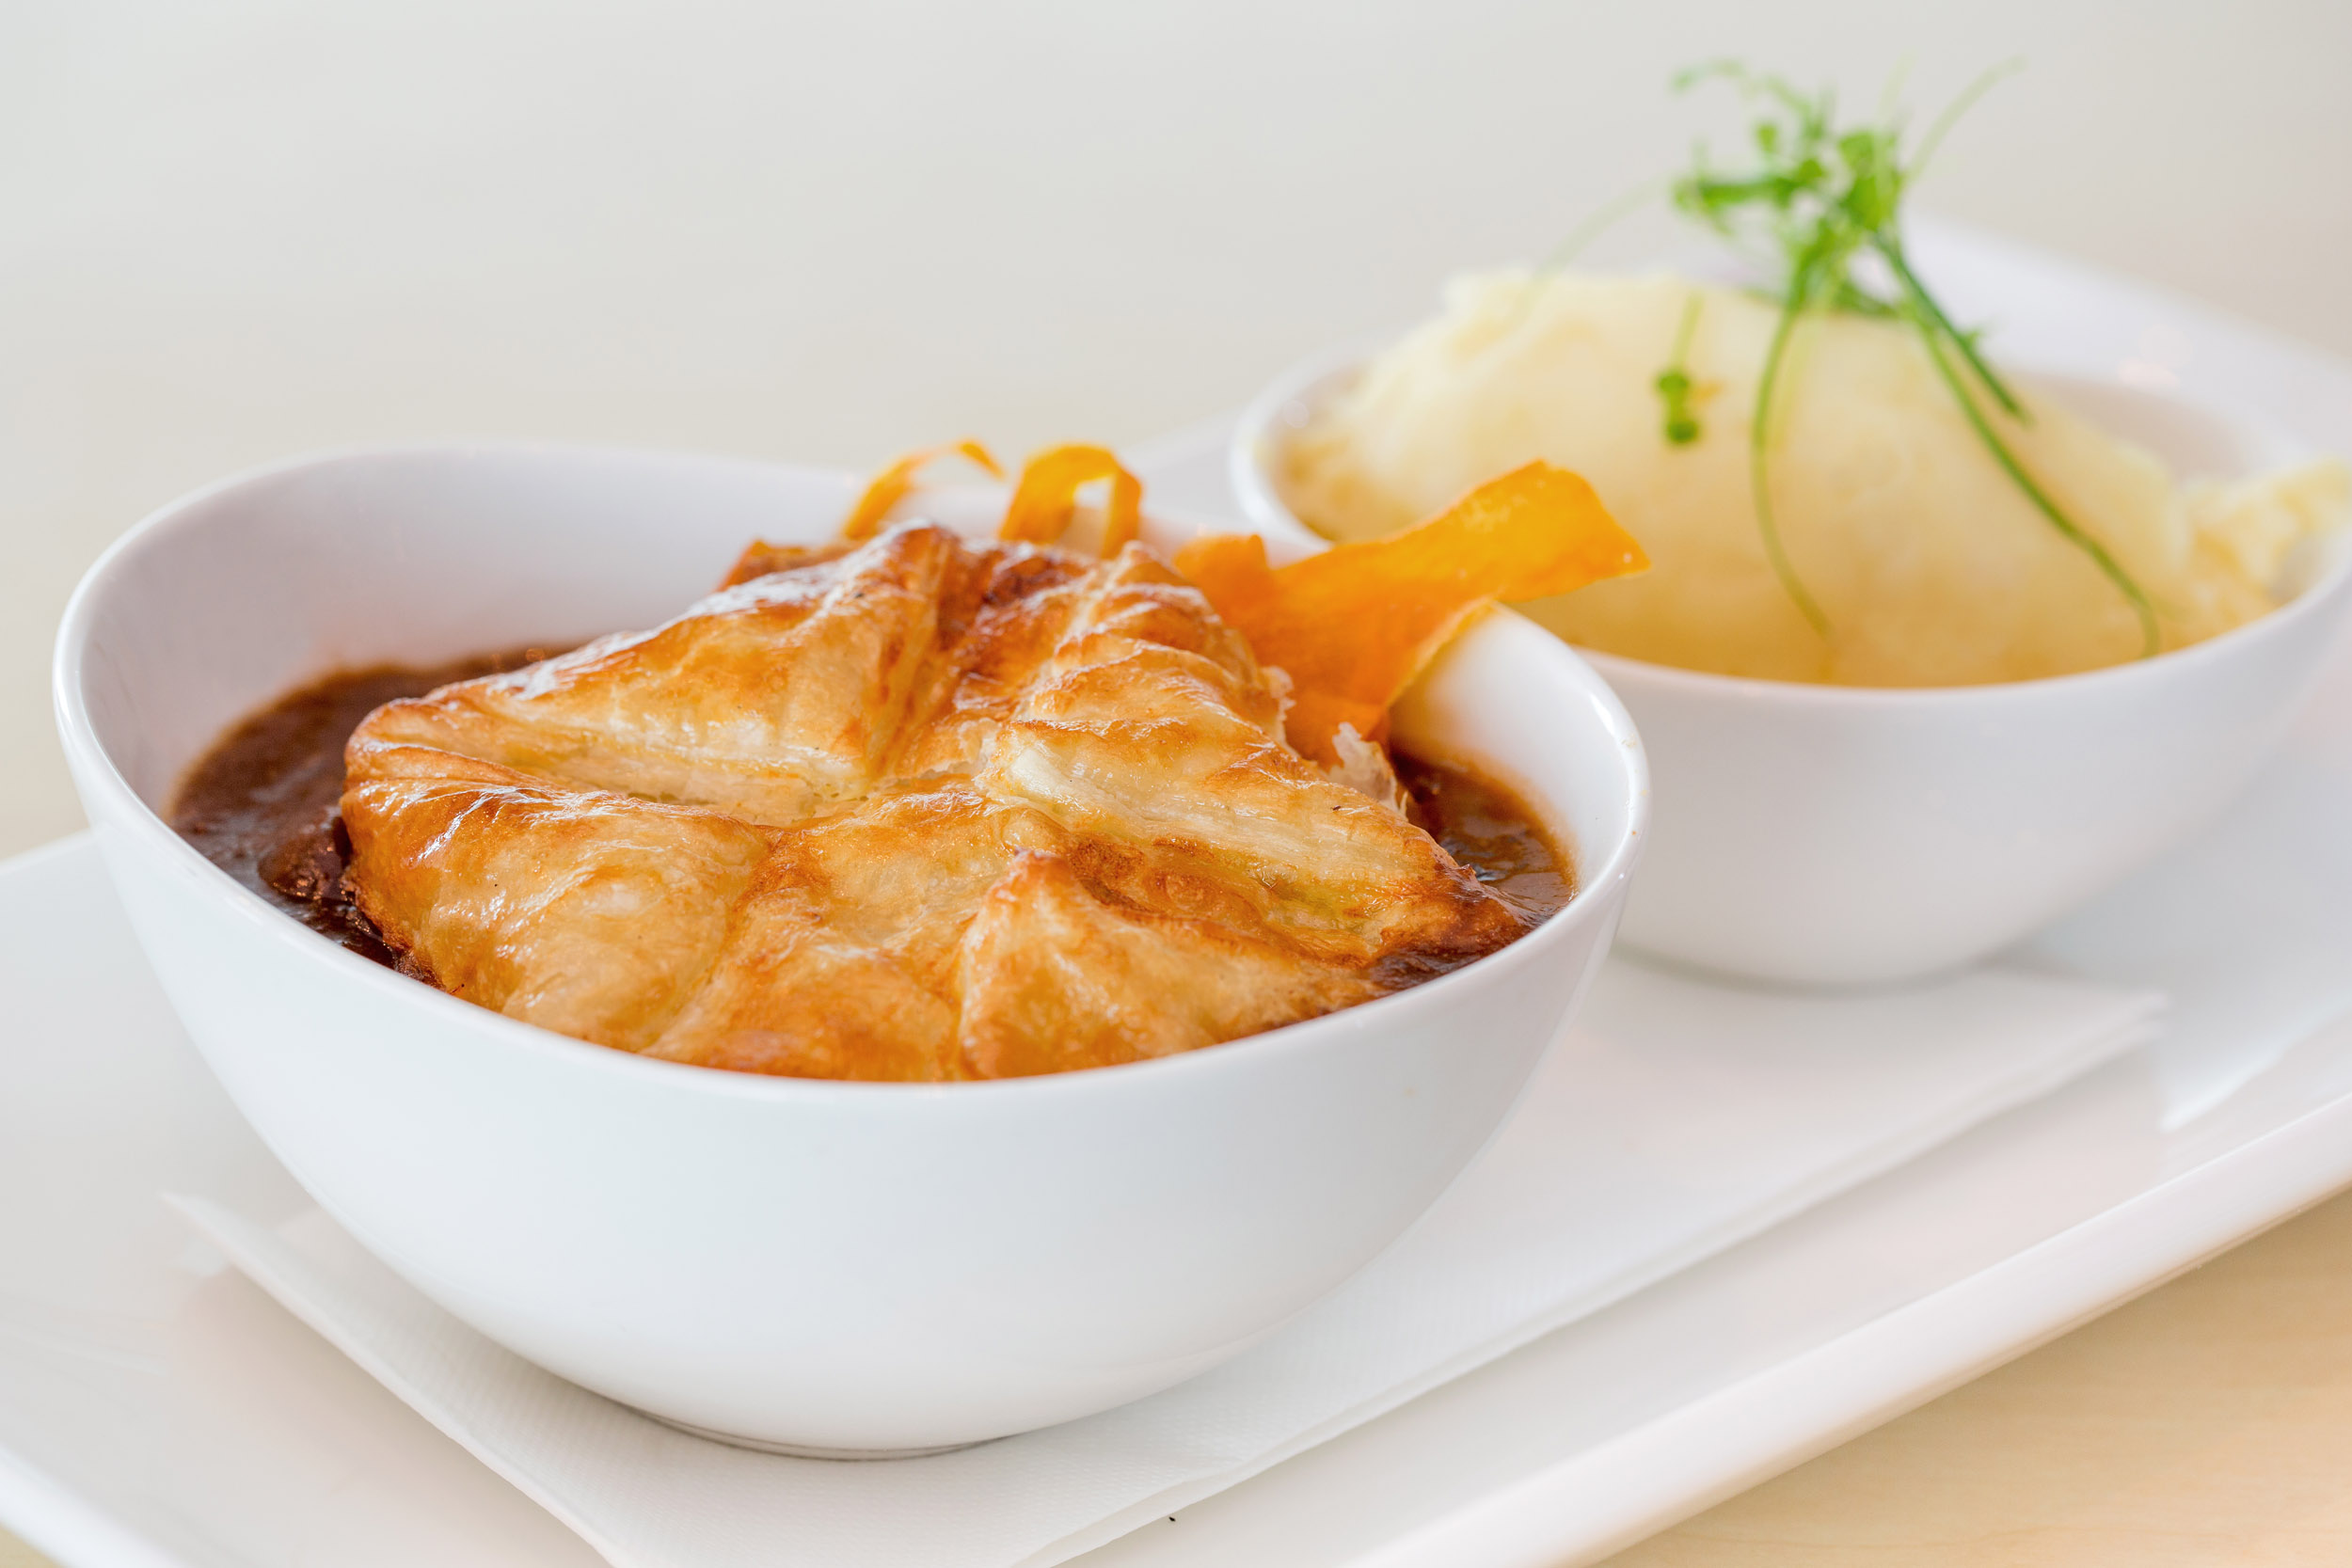 commercial-food-photography.jpg